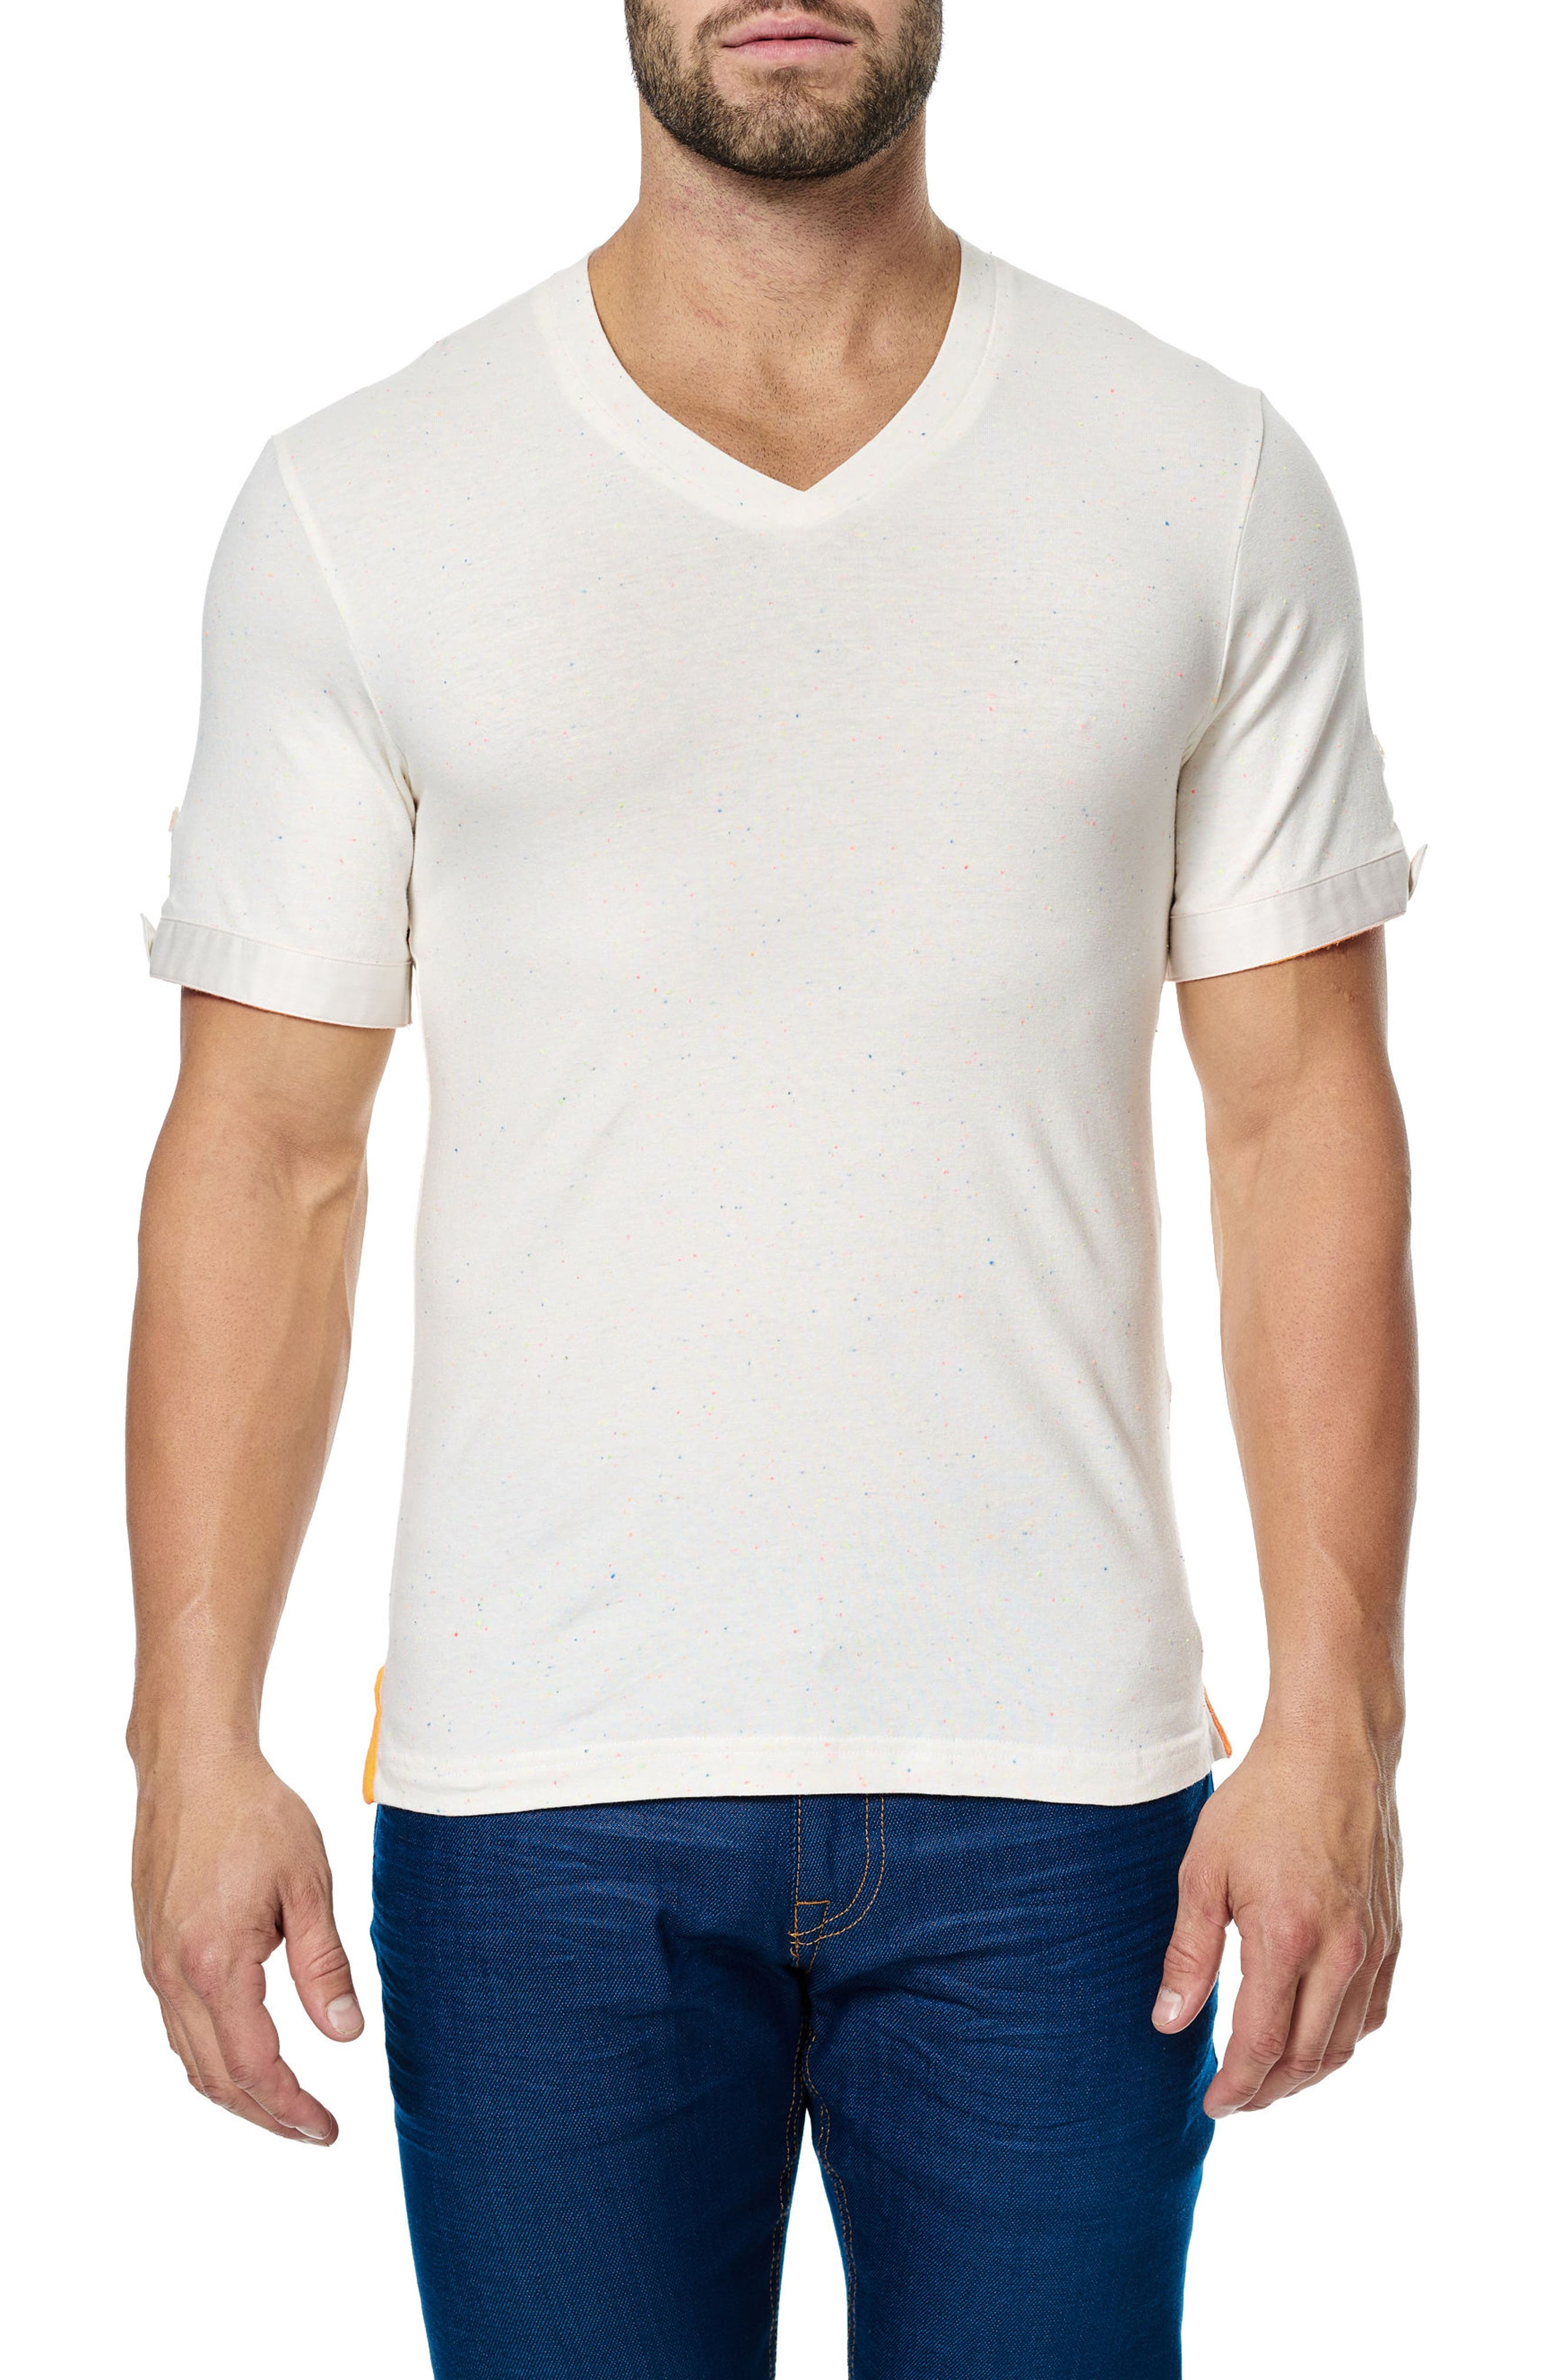 Maceoo V-Neck Stretch T-Shirt